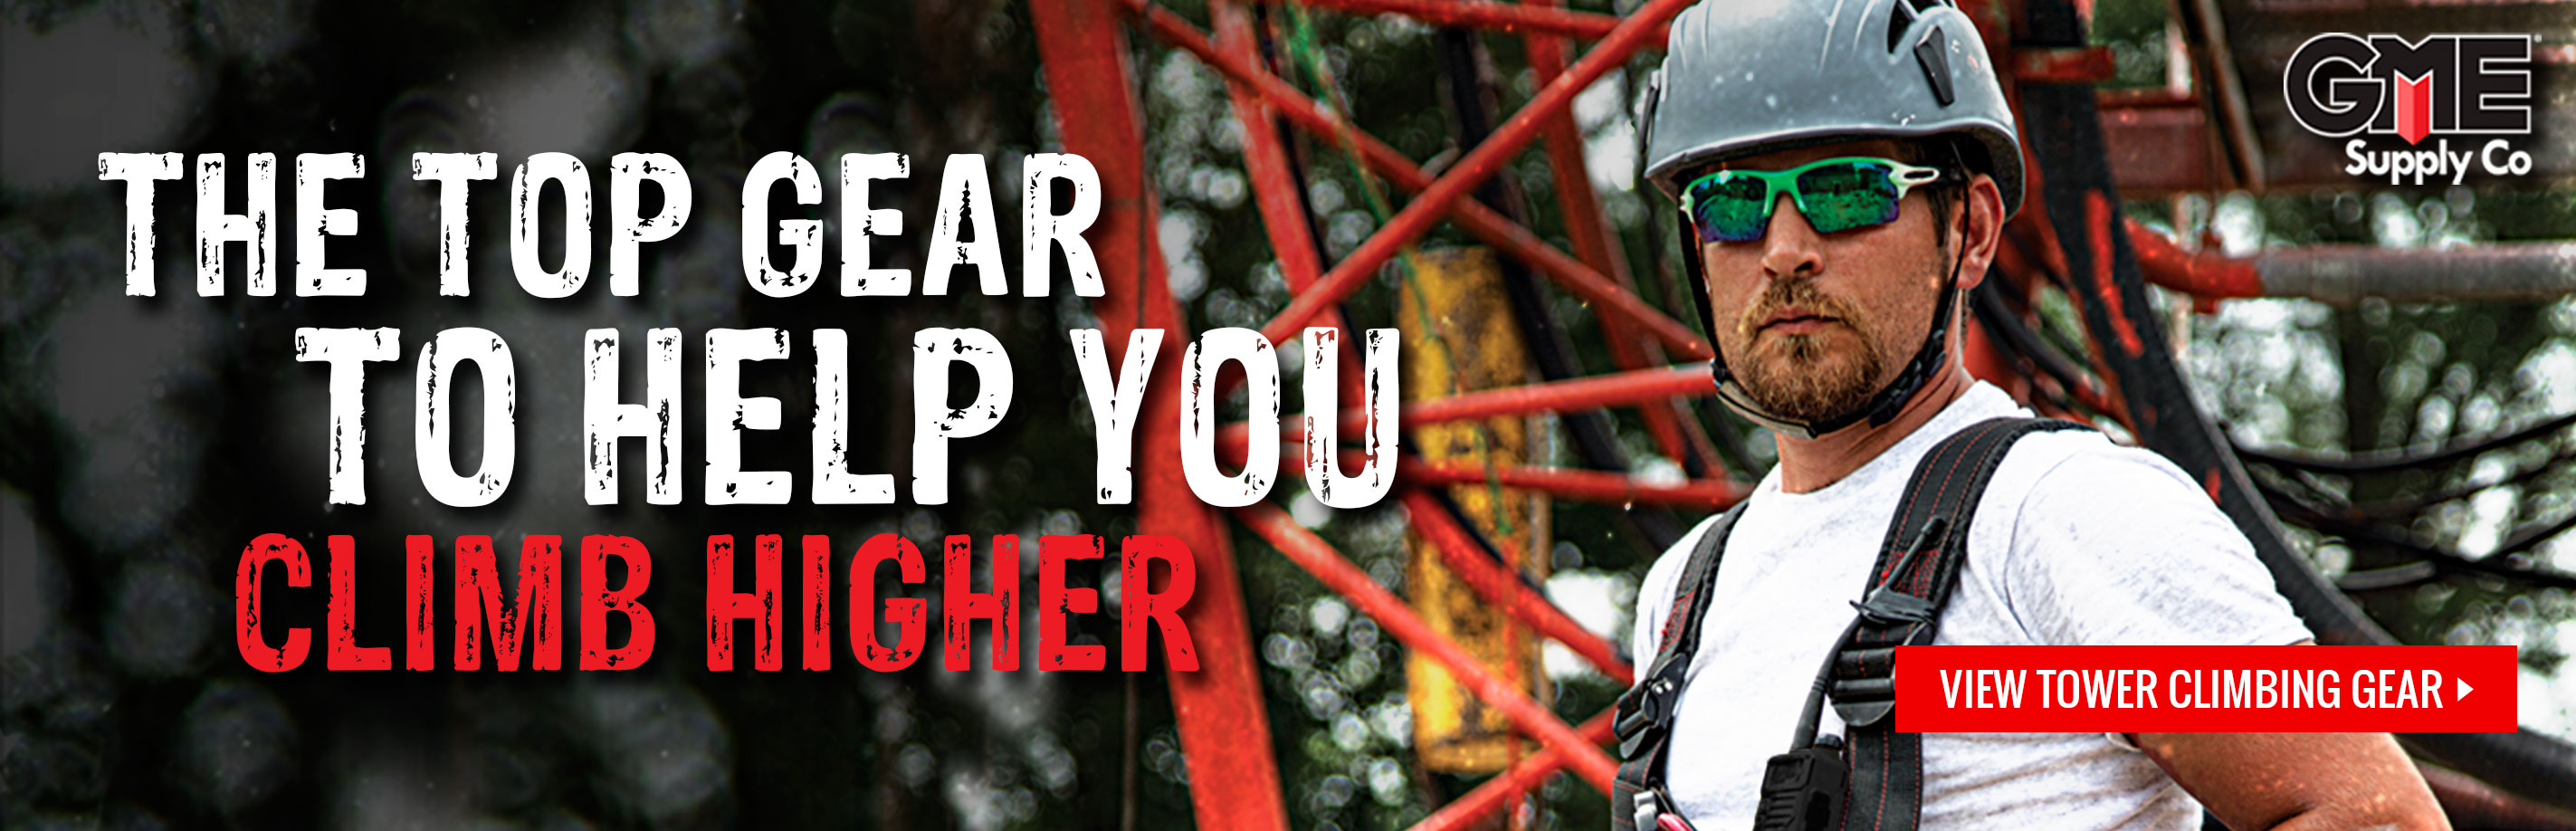 Tower Climbing Gear and Equipment at GME Supply